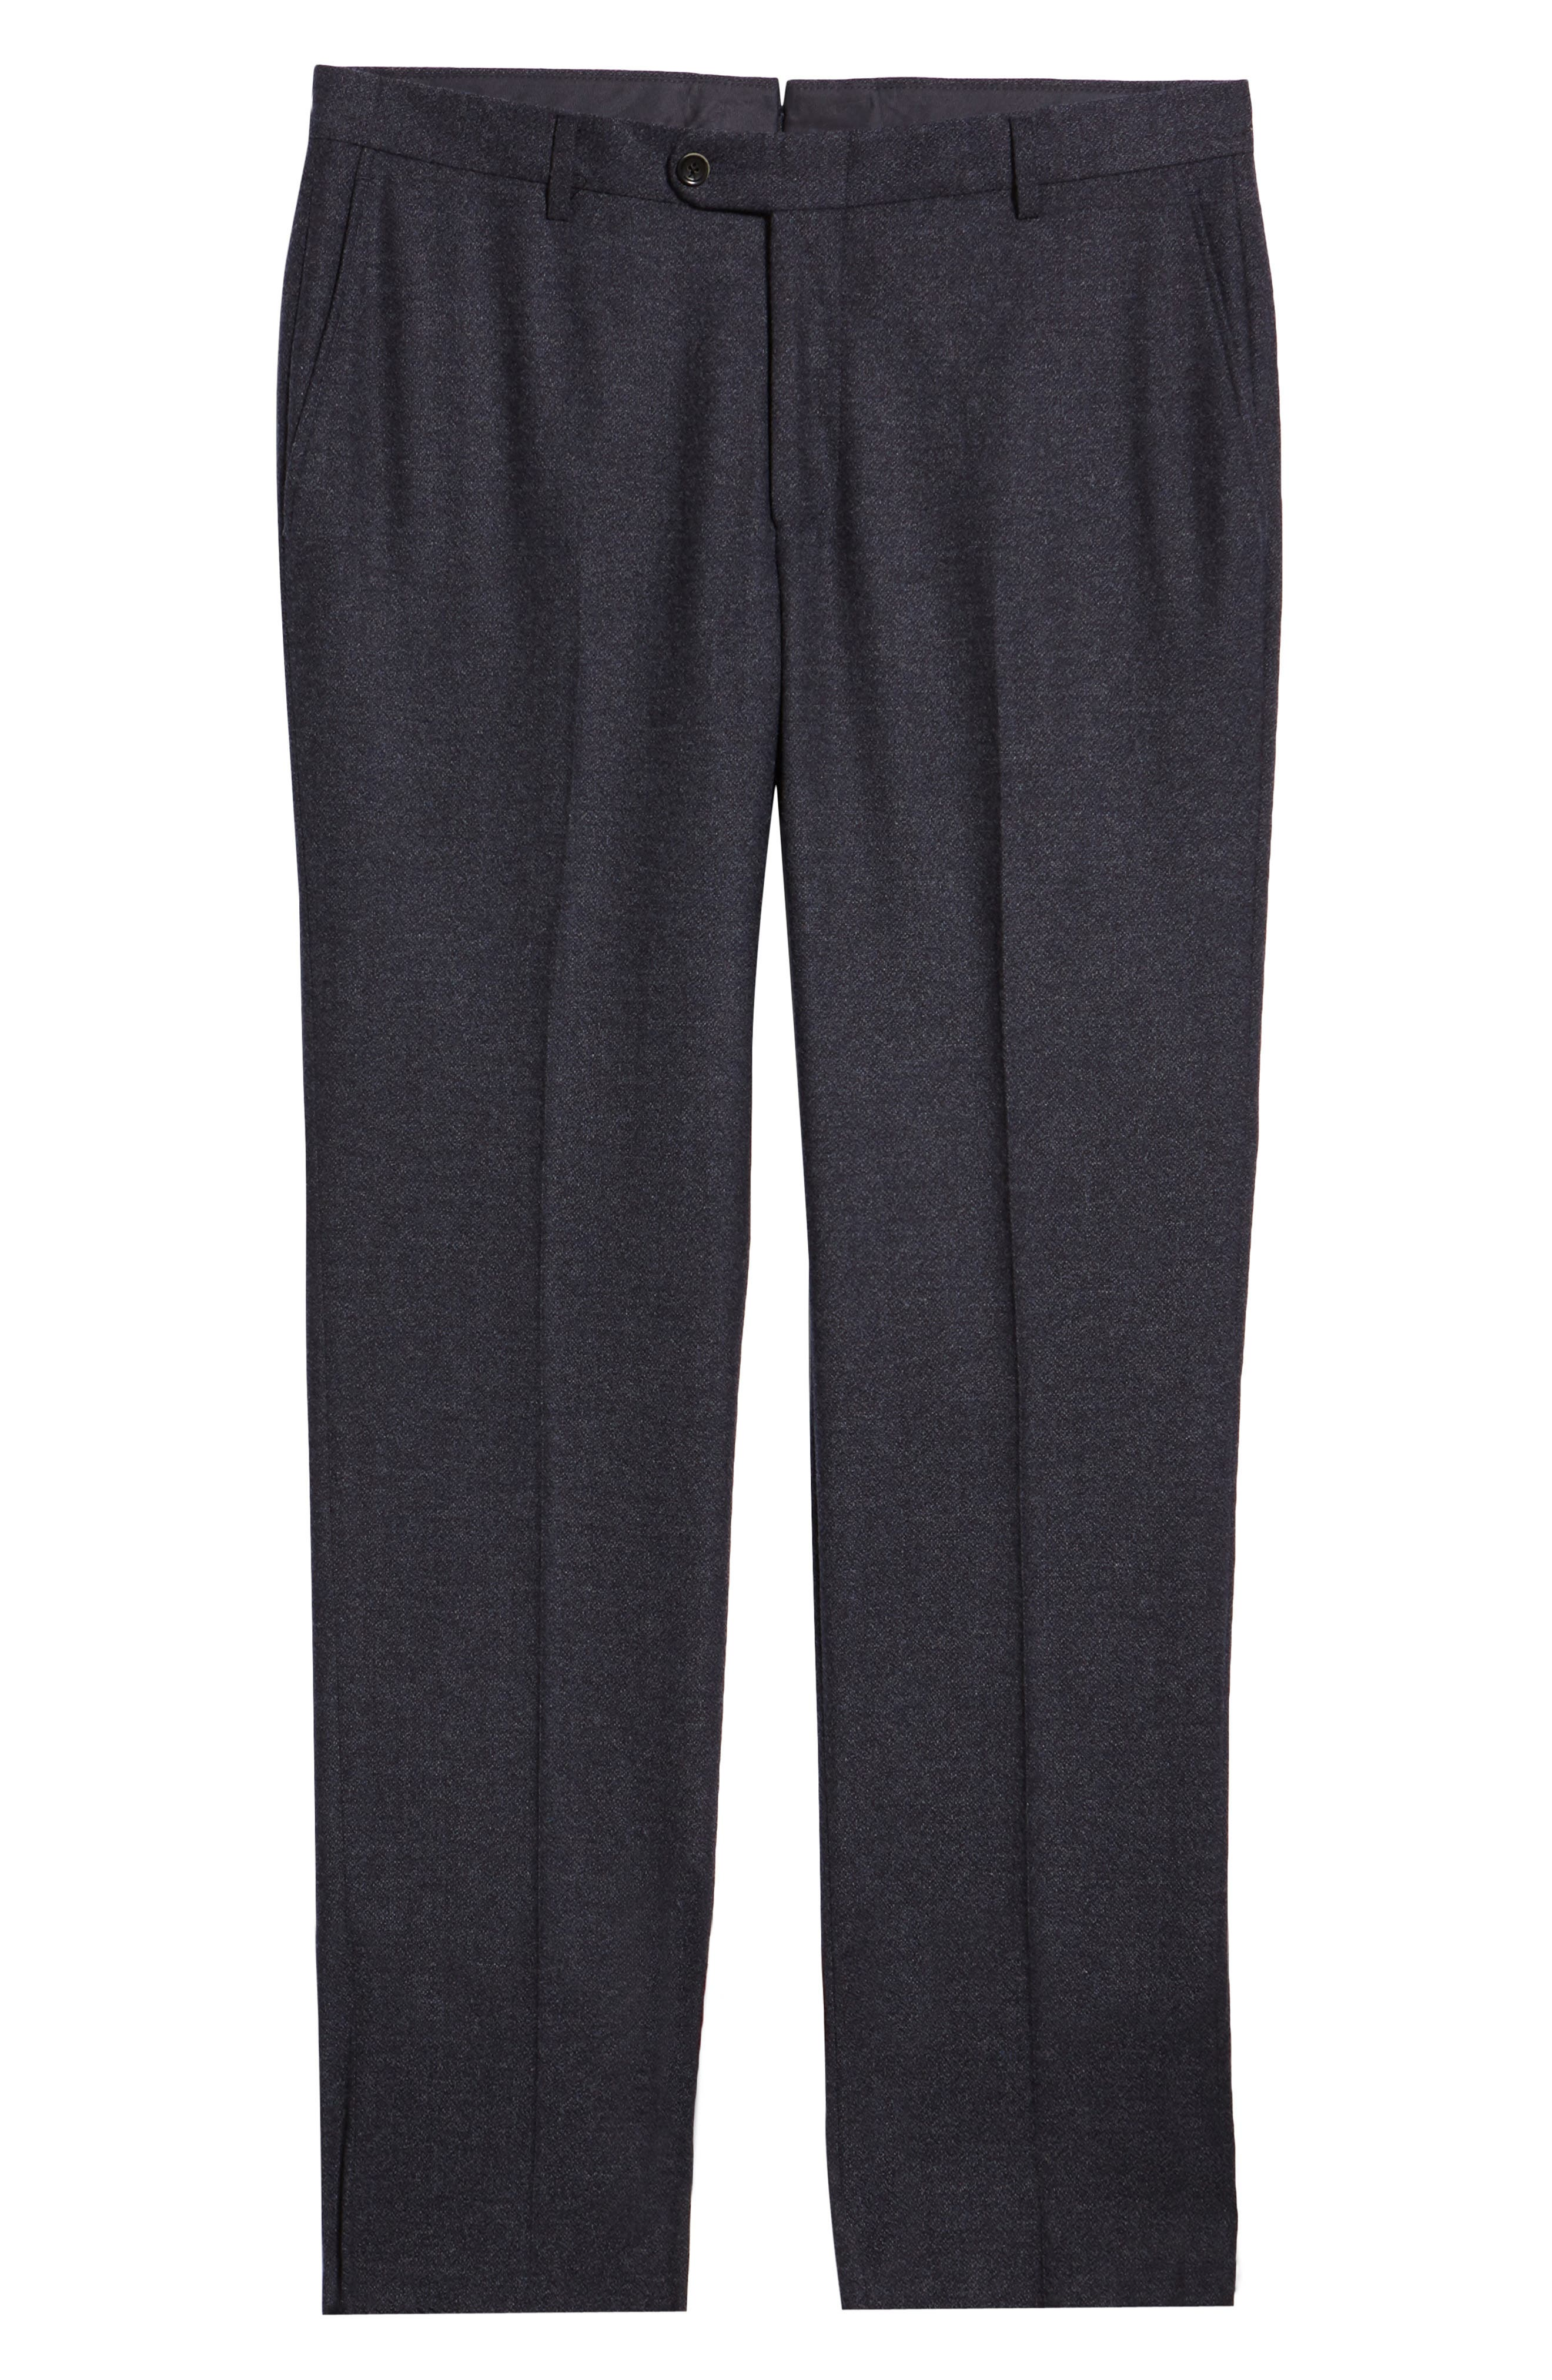 HICKEY FREEMAN,                             Classic Fit Solid Trousers,                             Alternate thumbnail 6, color,                             GREY